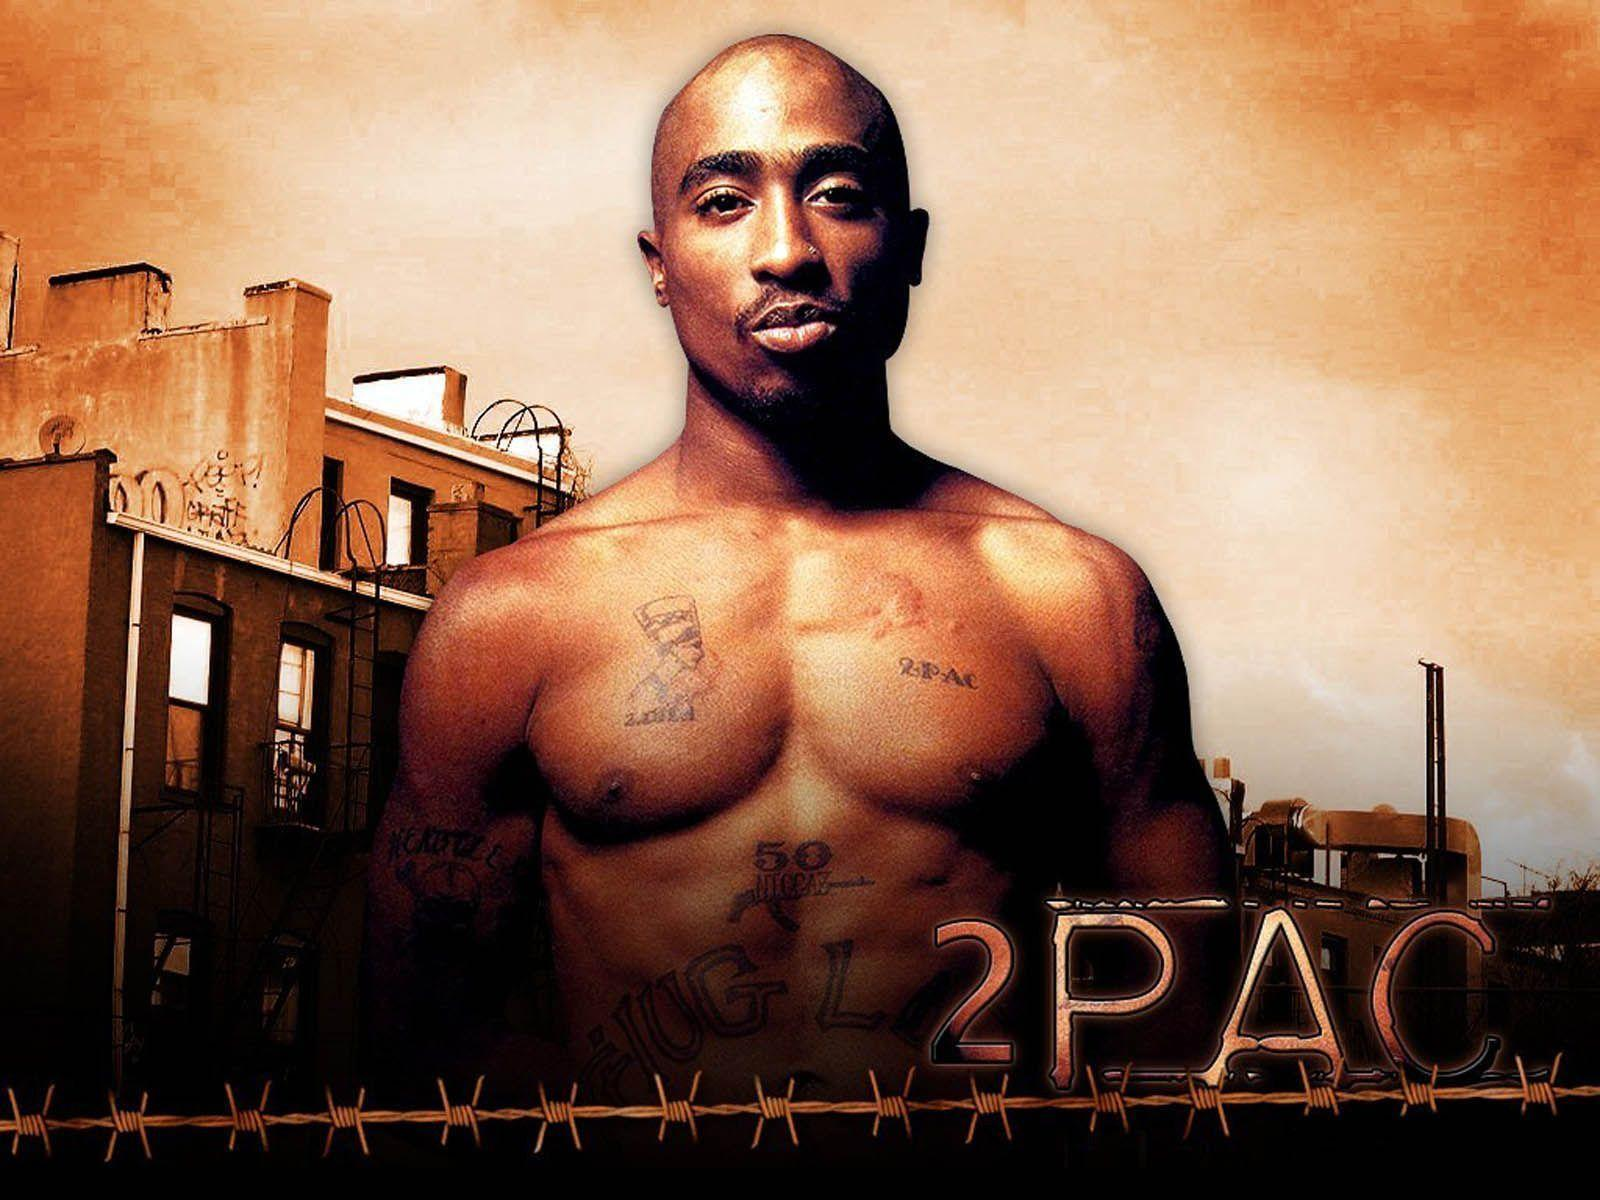 40 tupac wallpaper hd - photo #13